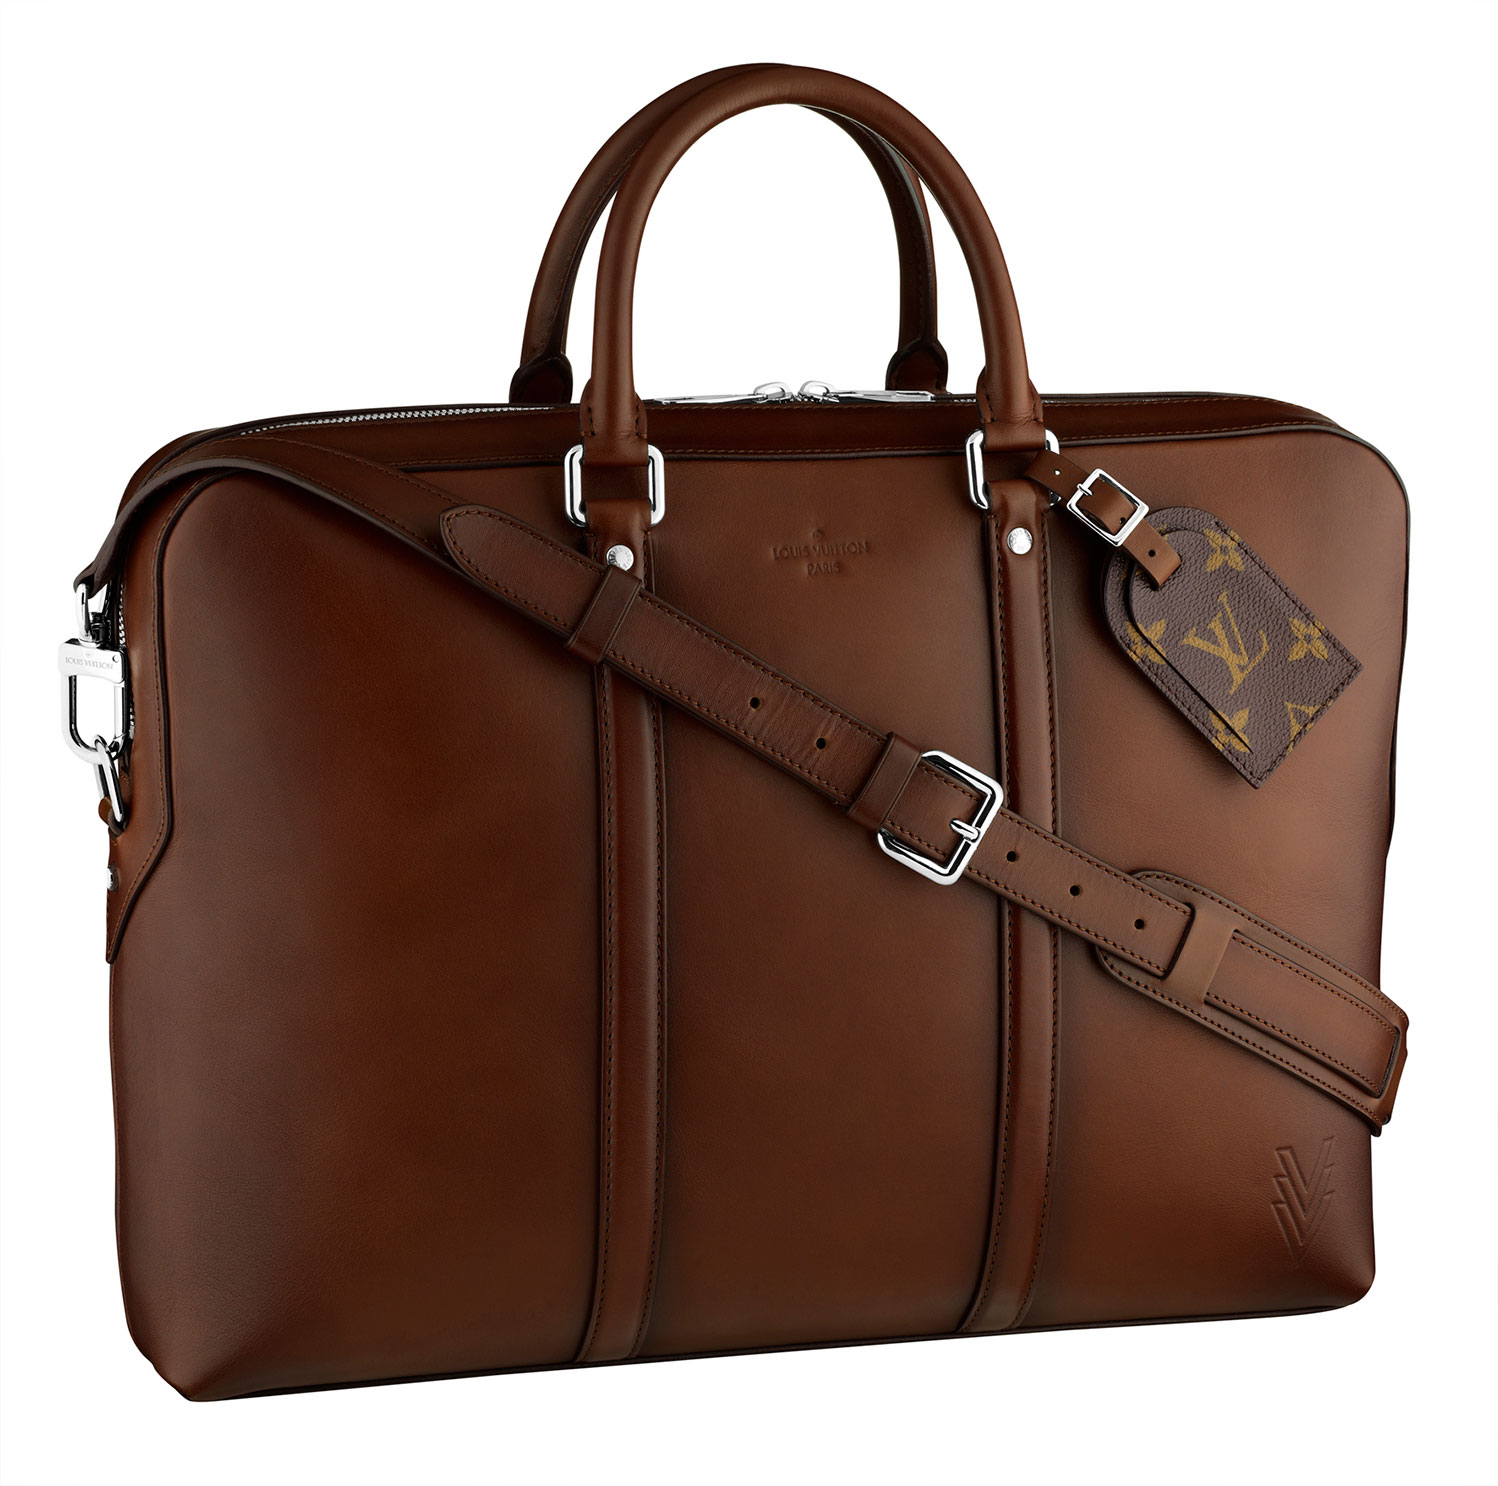 sac-louis-vuitton-businessman-paris